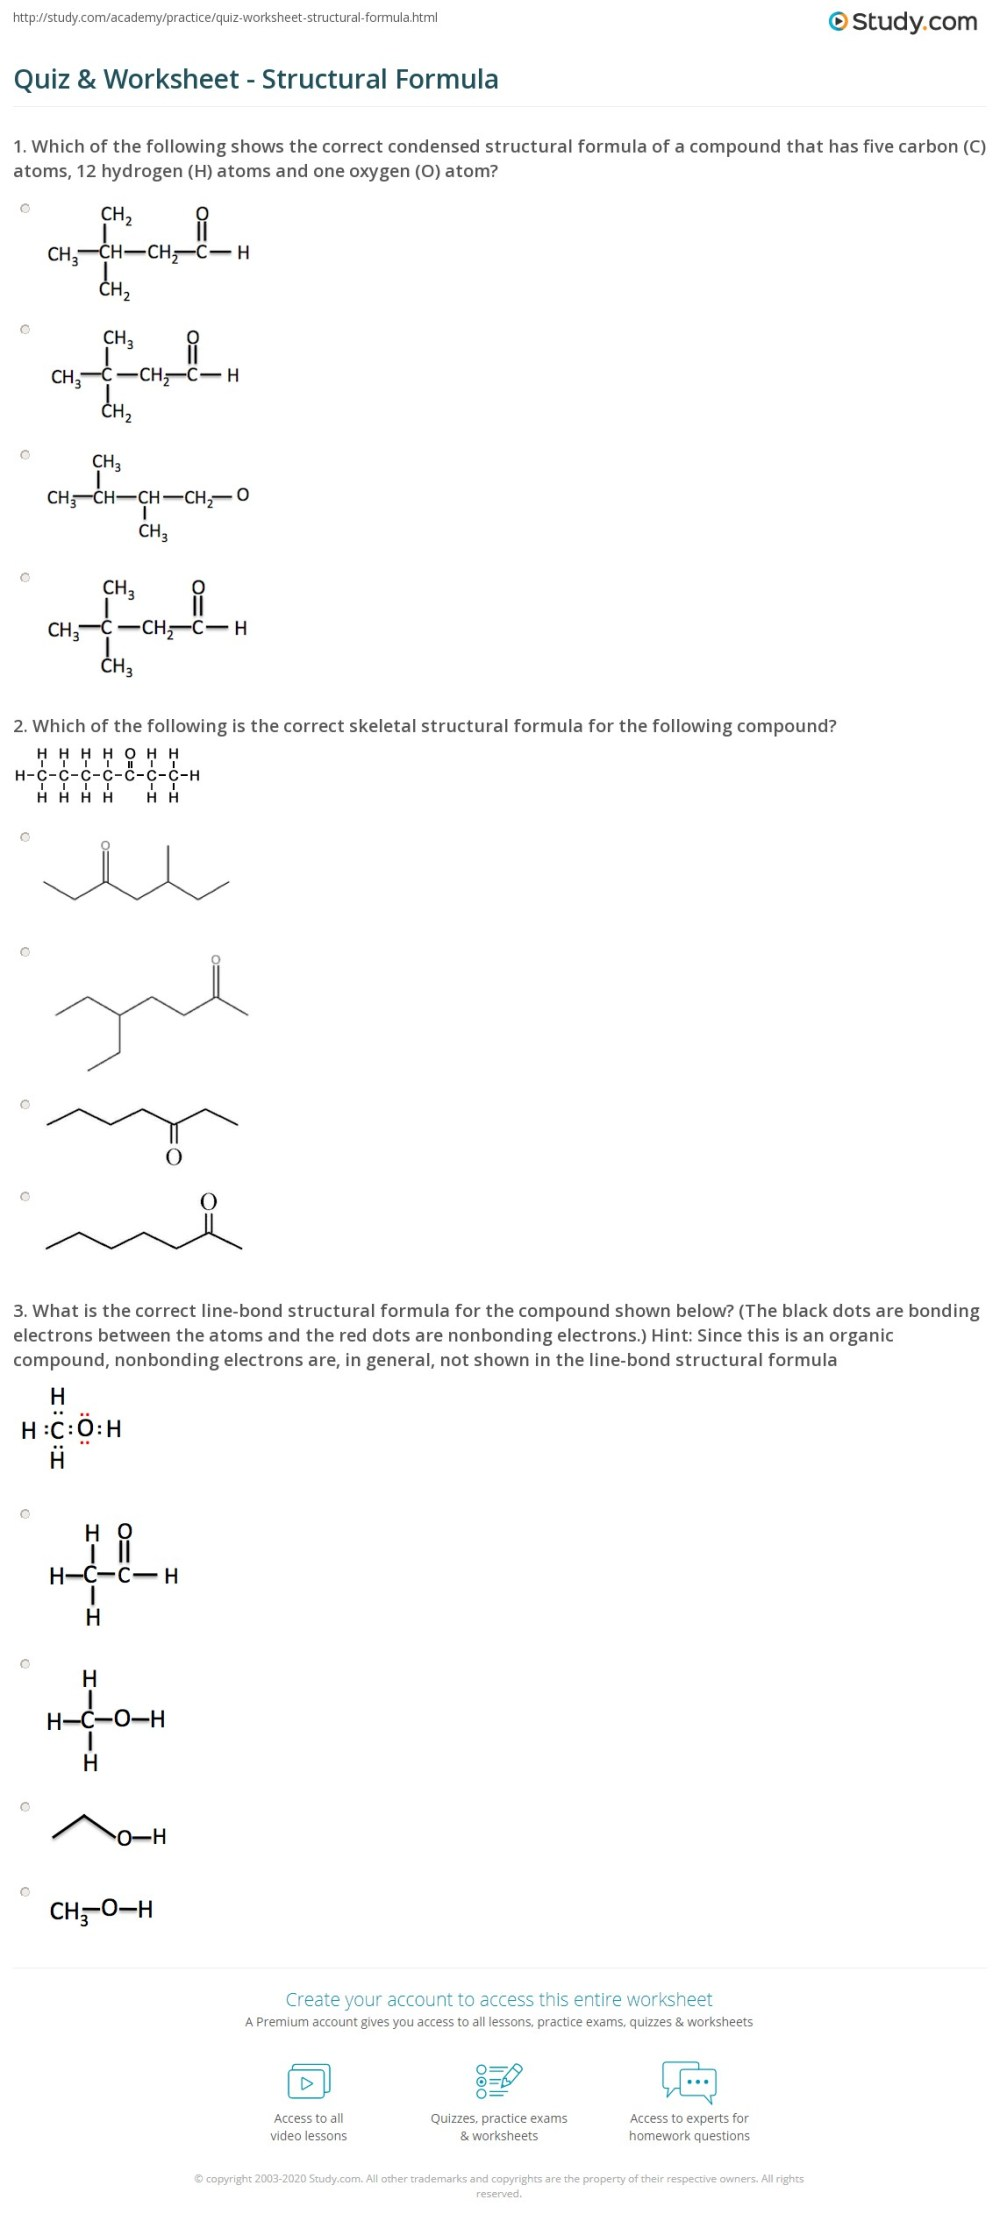 medium resolution of Quiz \u0026 Worksheet - Structural Formula   Study.com